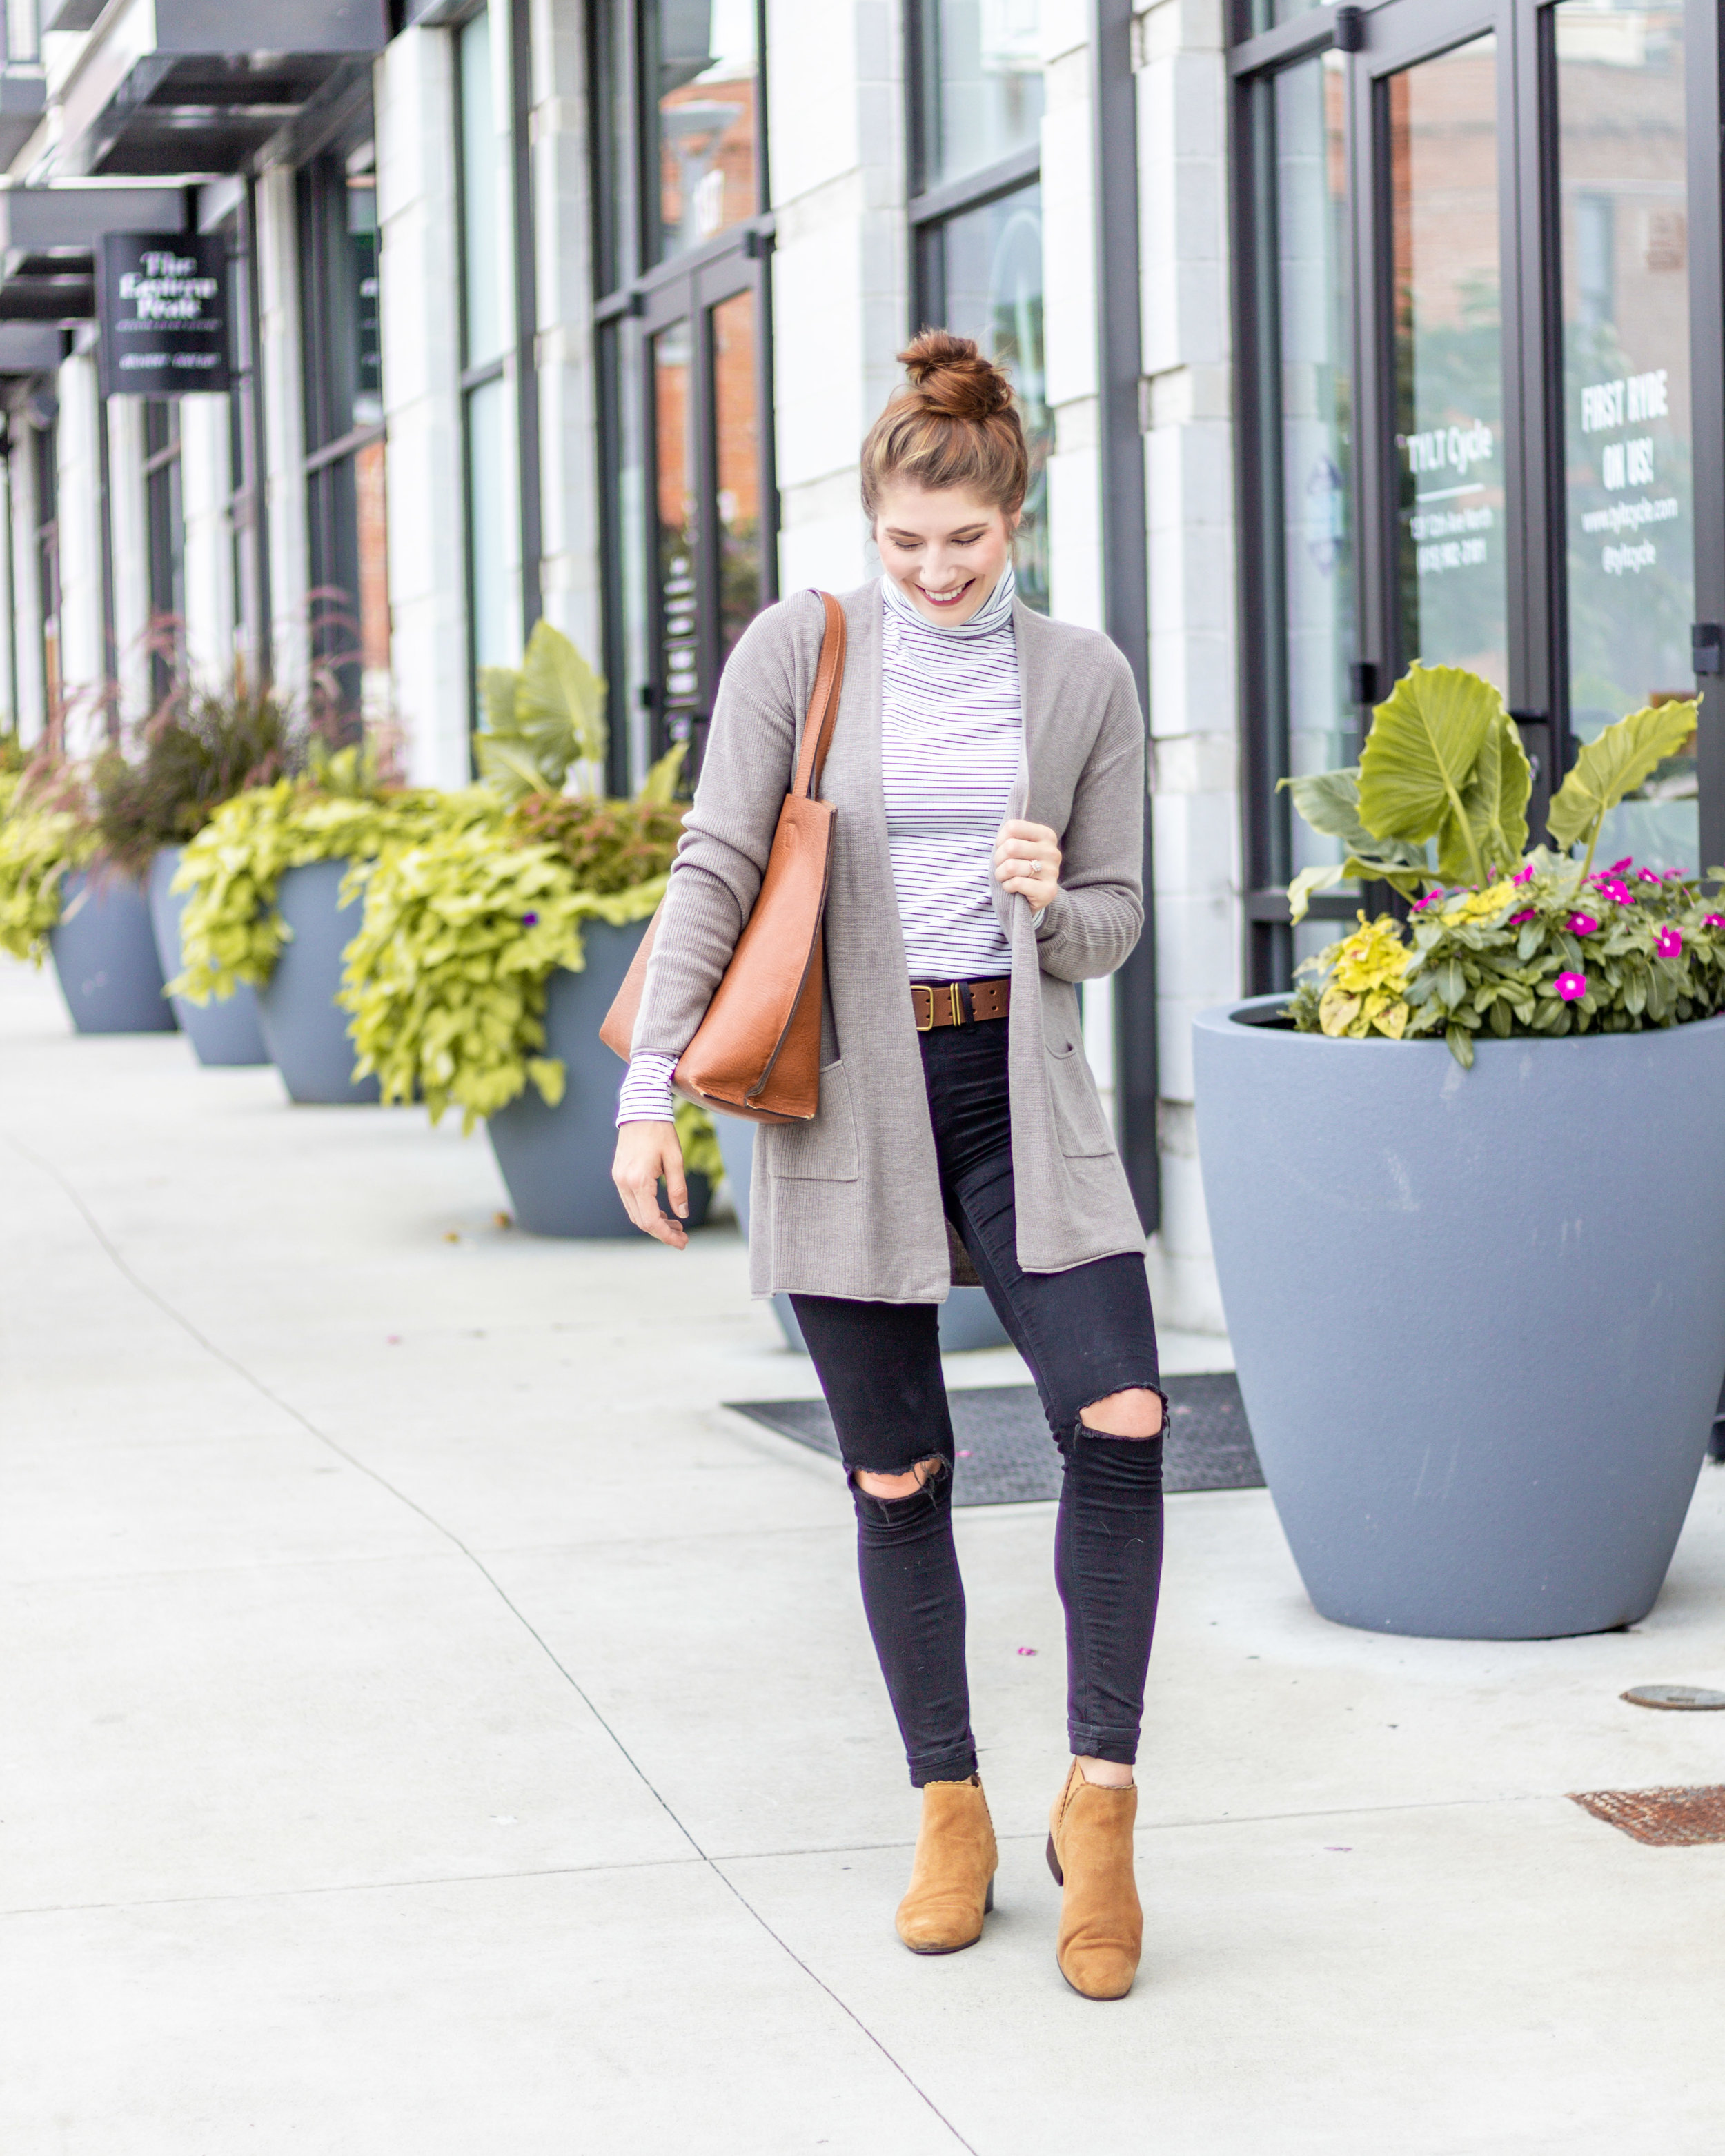 Olivia Shea Style, Turtleneck, Fall Outfit Inspiration